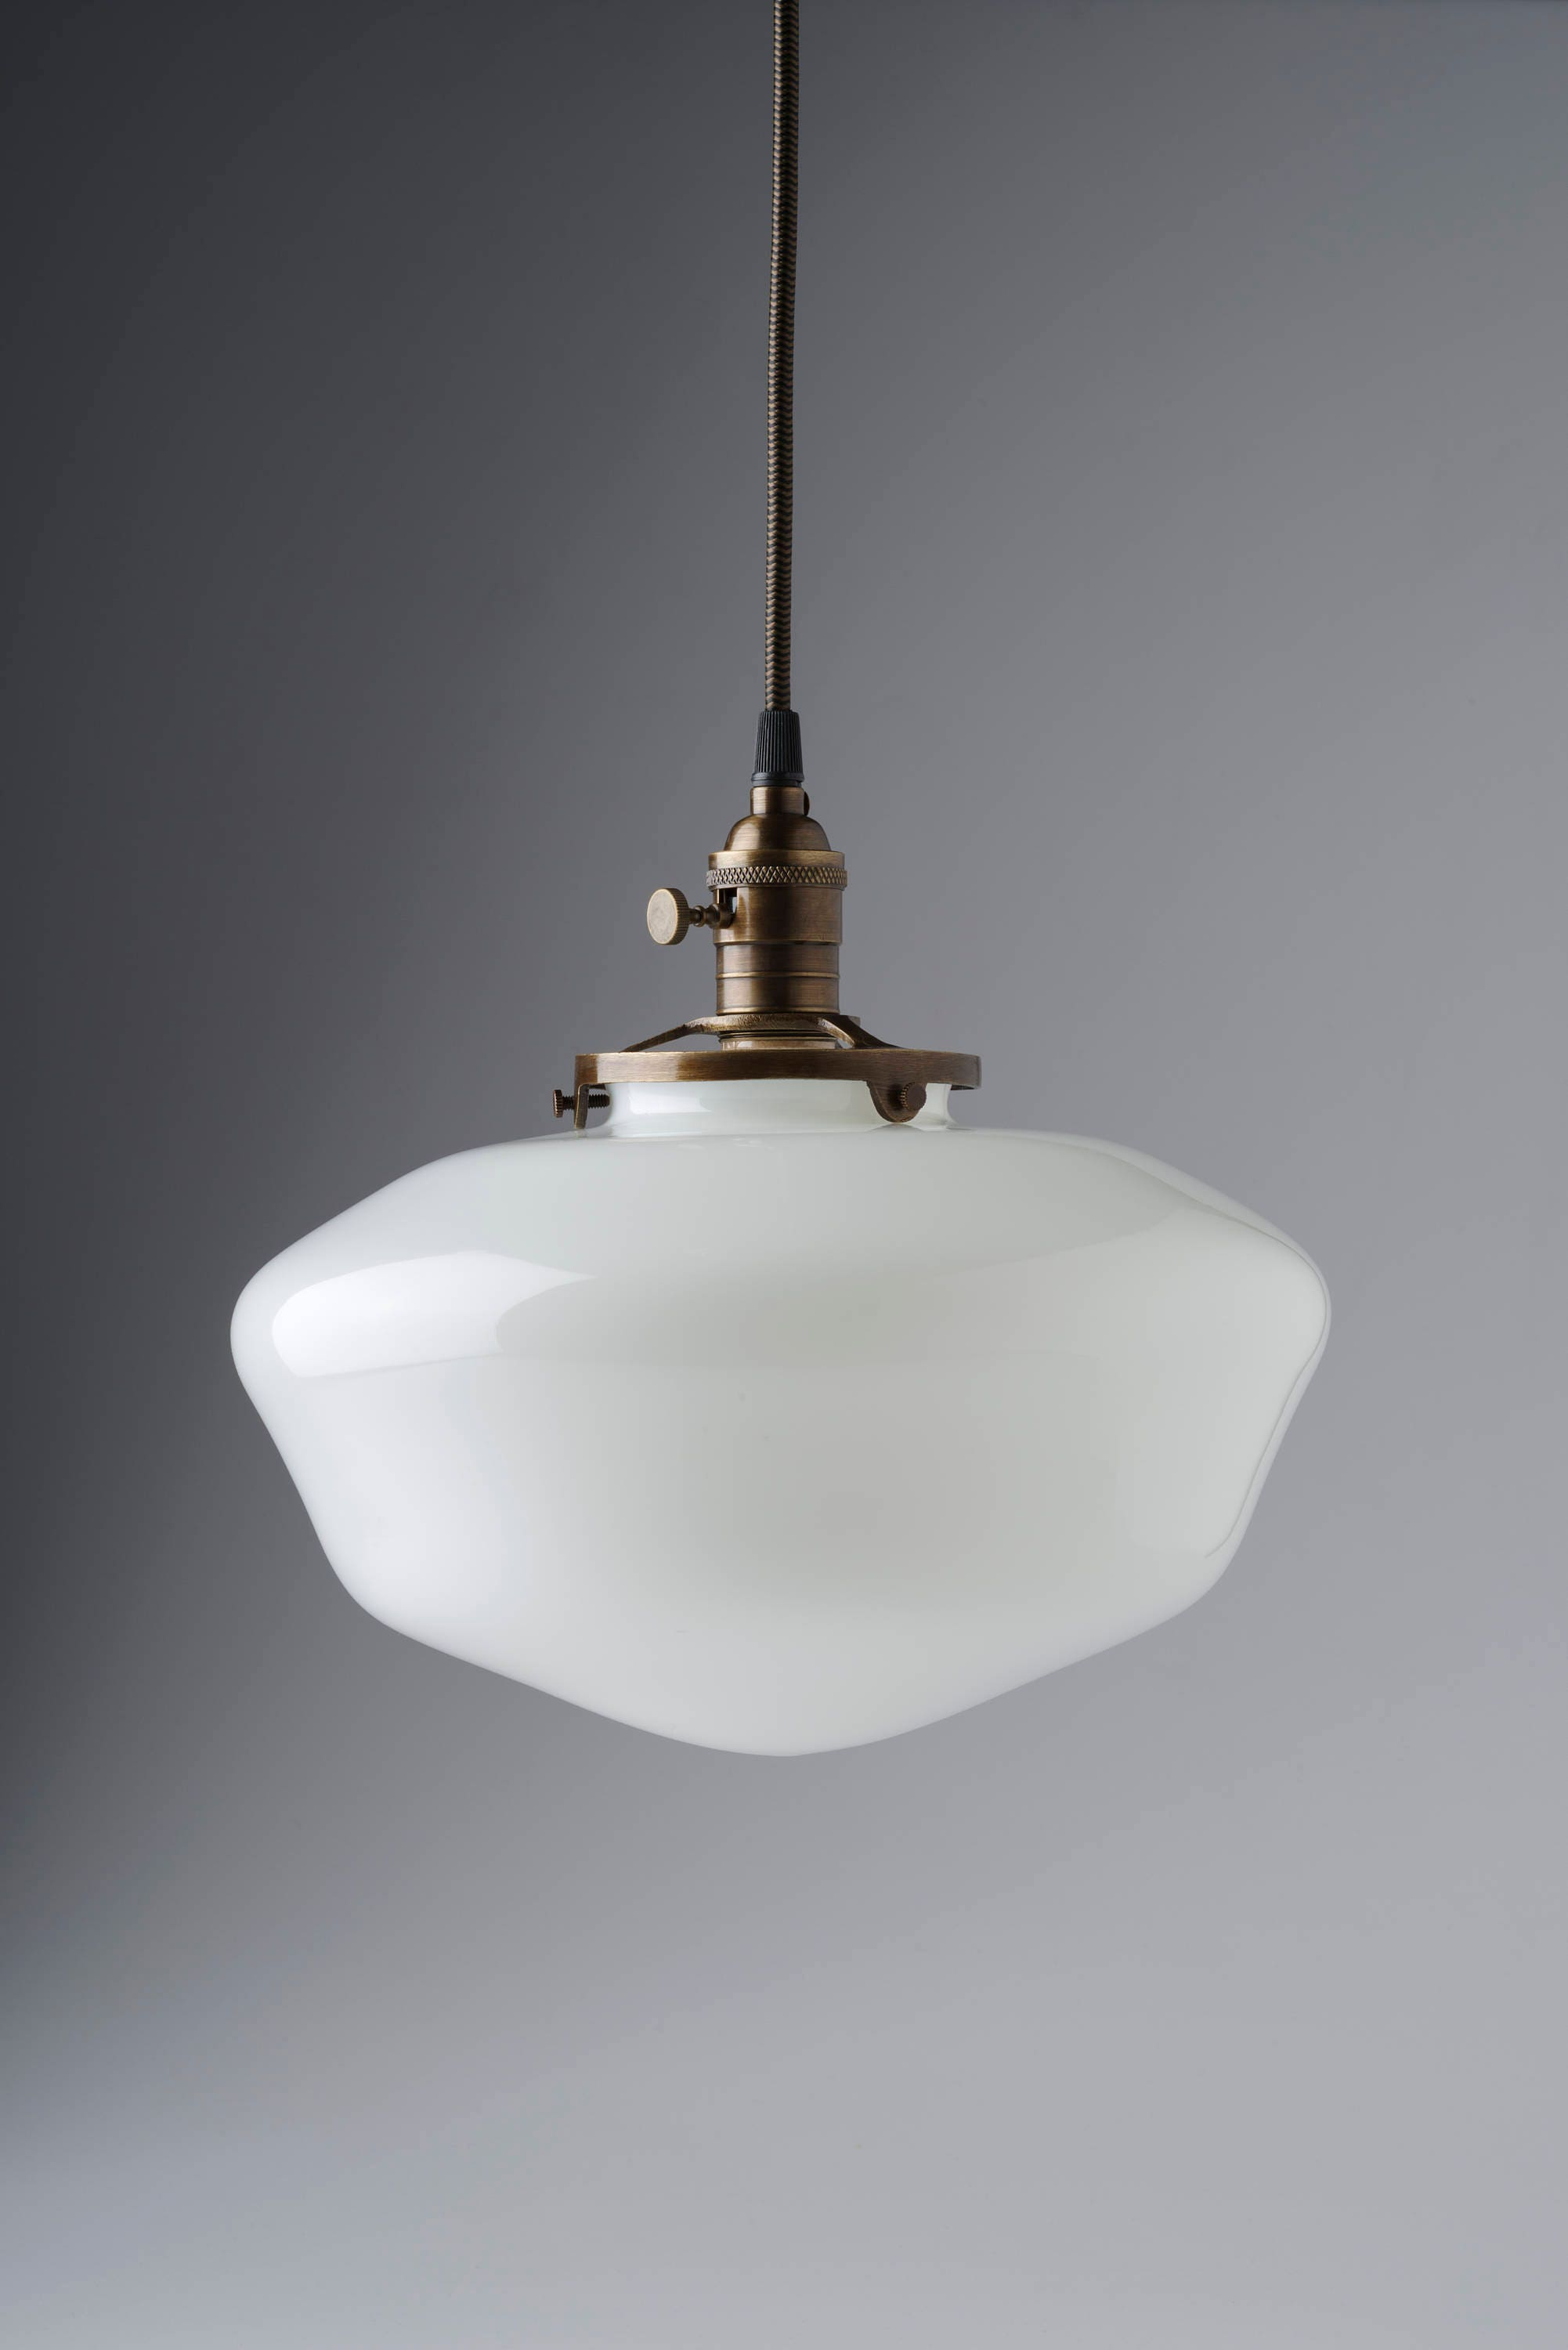 courthouse product pontotoc ocl architectural schoolhouse lighting pendant